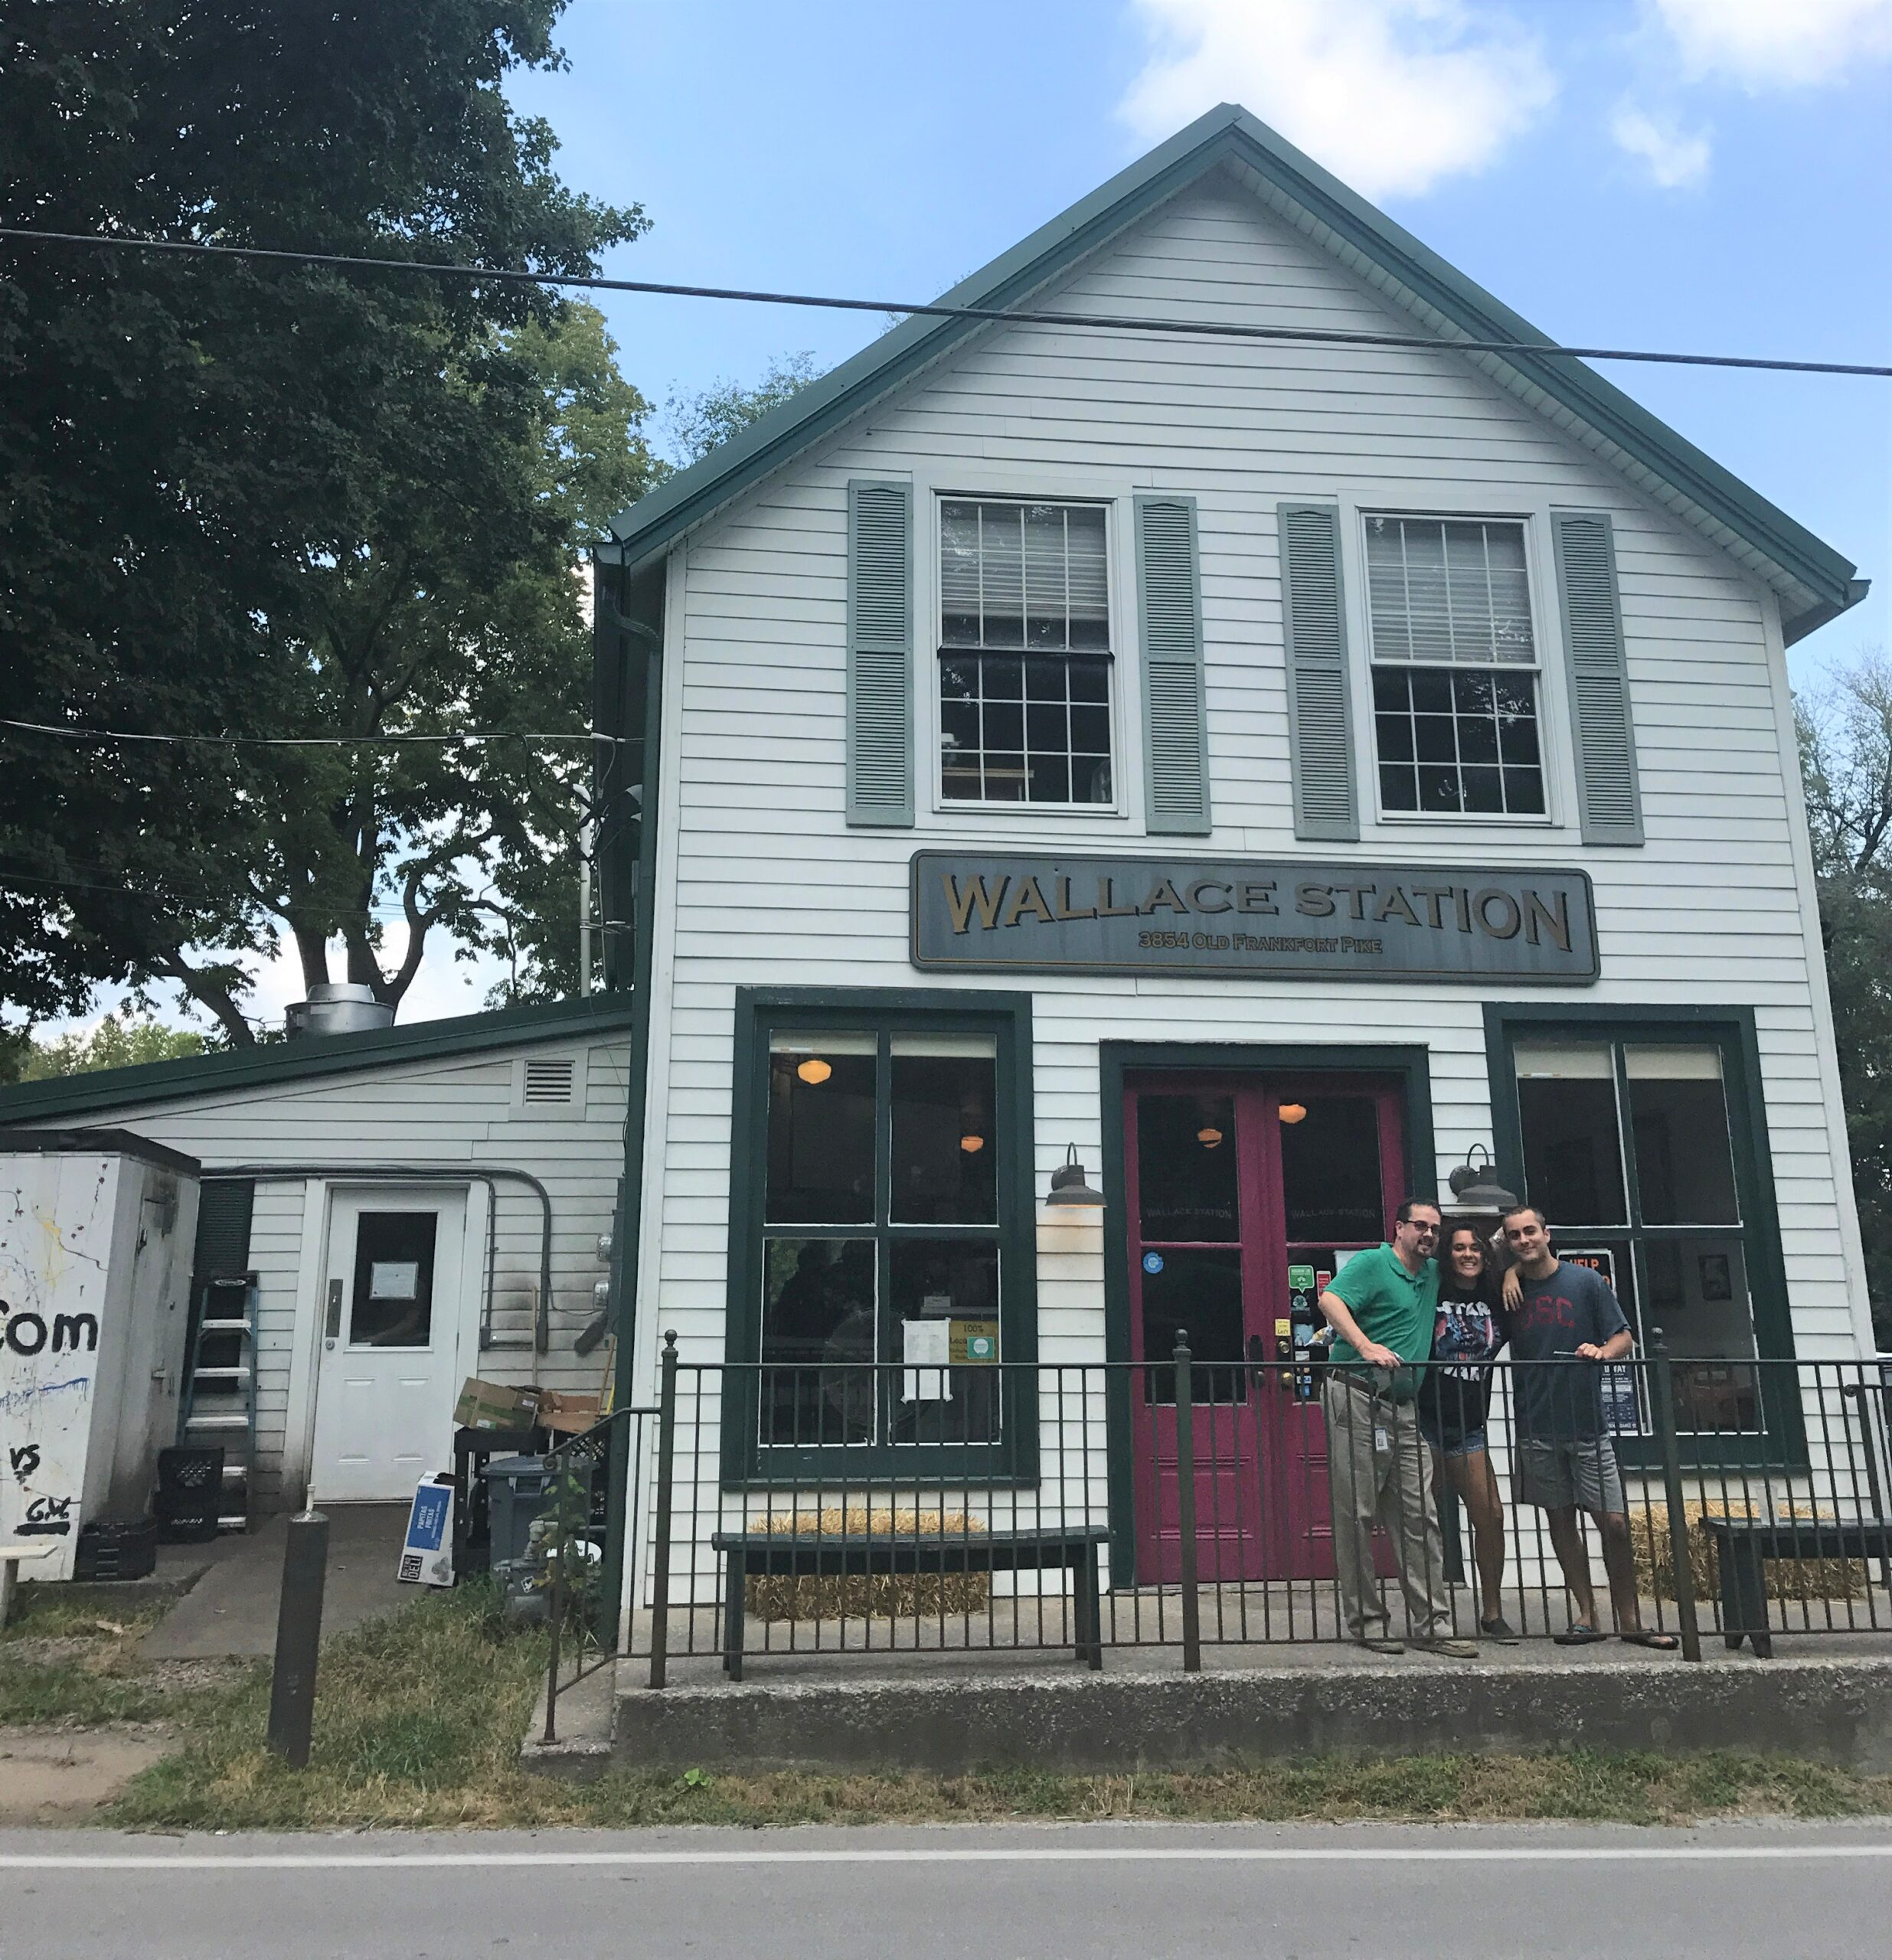 Small towns in KY - Wallace Station Deli in Midway